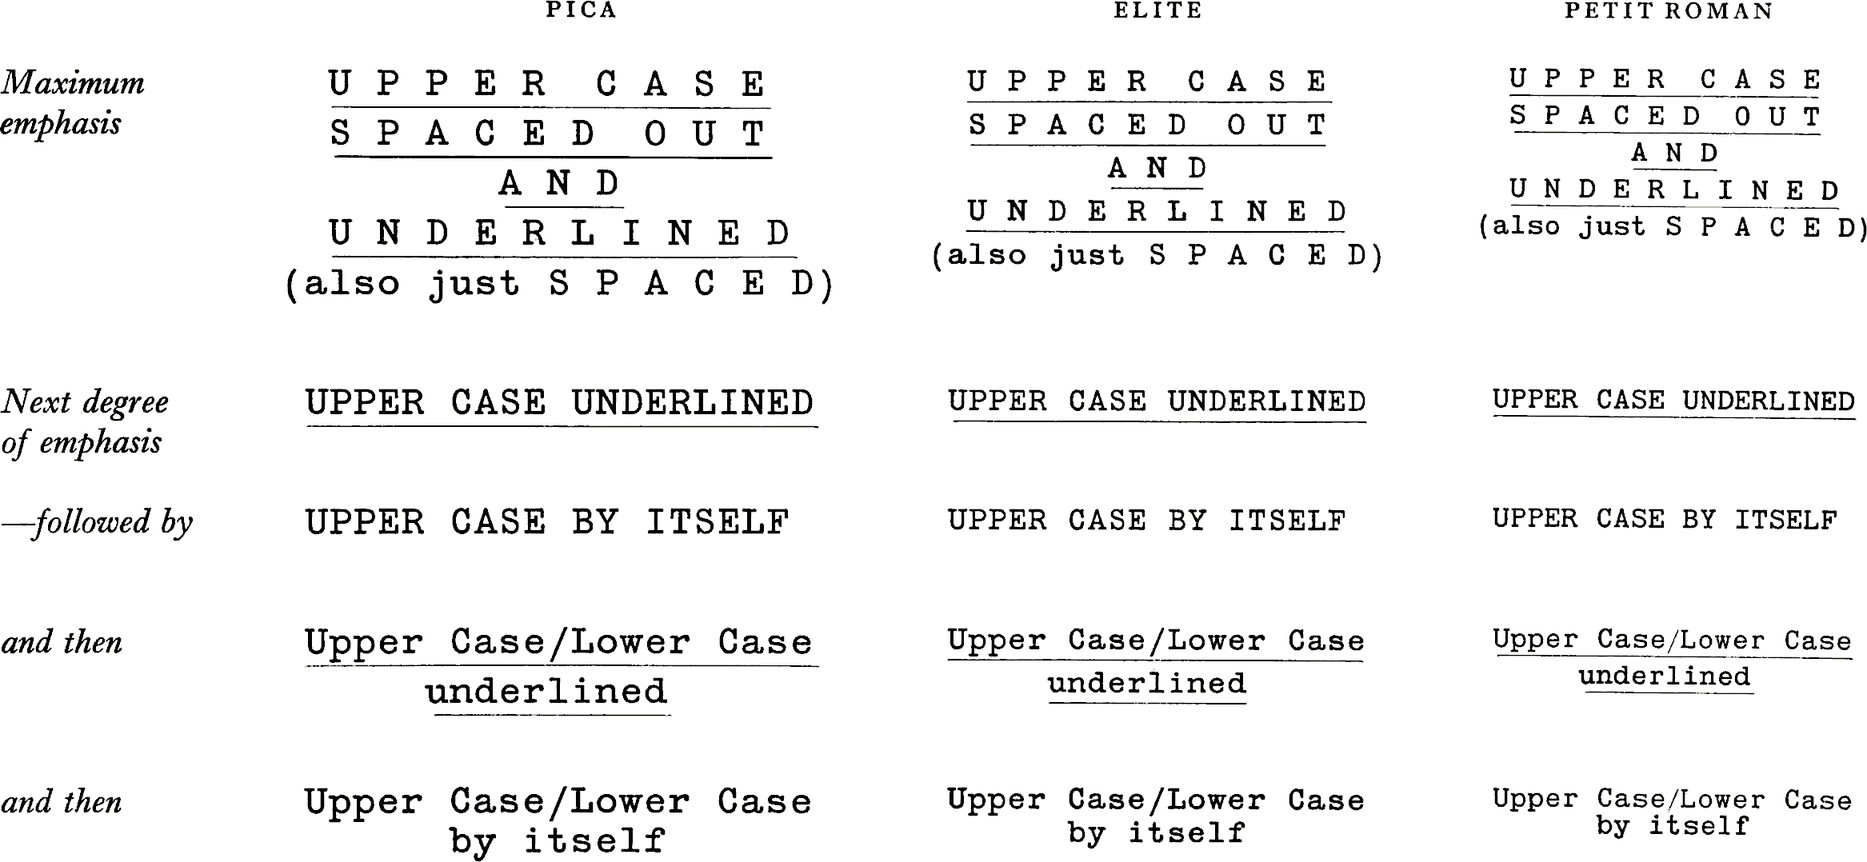 Three styles of typeface: Pica, Elite and Petit Roman. Pica is the largest, elite is smaller, and petit roman the smallest. Maximum emphasis shows uppercased text that is spaced out and underlined. Next degree of emphasis shows upper cased underlined text. Follpwed by upper case by itself. and then Upper case / Lower case underlined. and then Upper case / Lower case by itself.